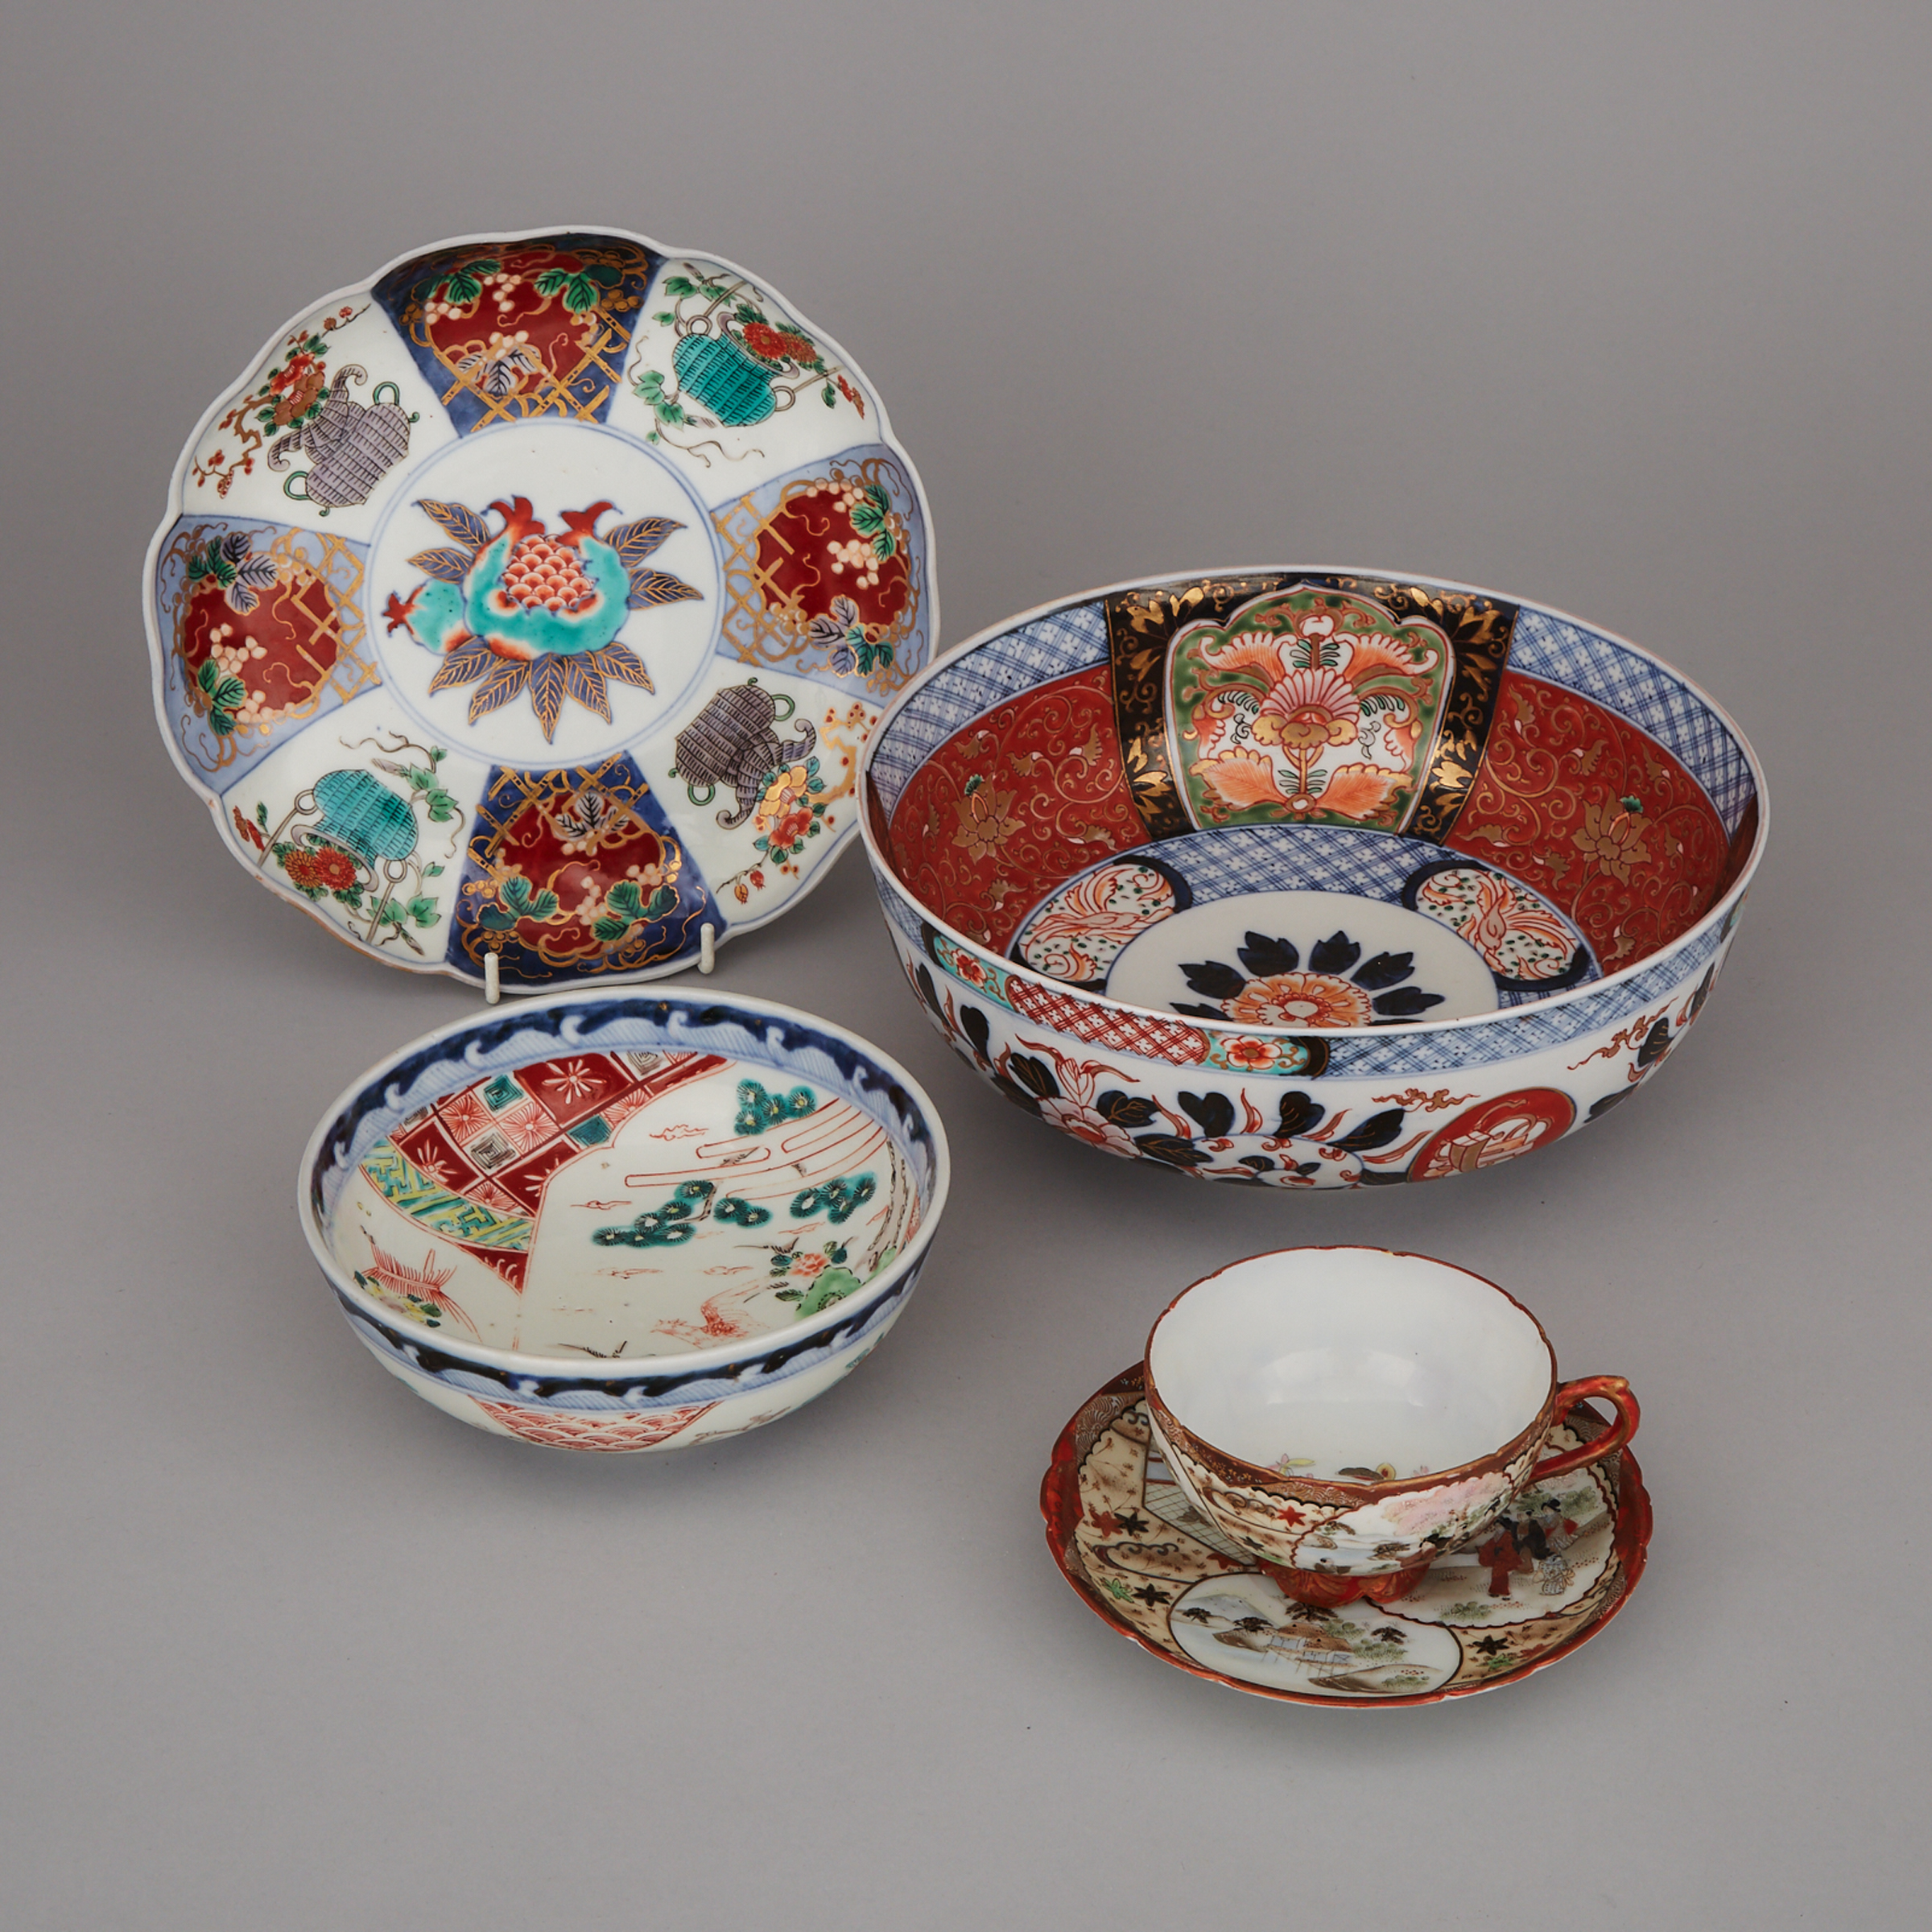 A Group of Five Japanese Porcelain Wares